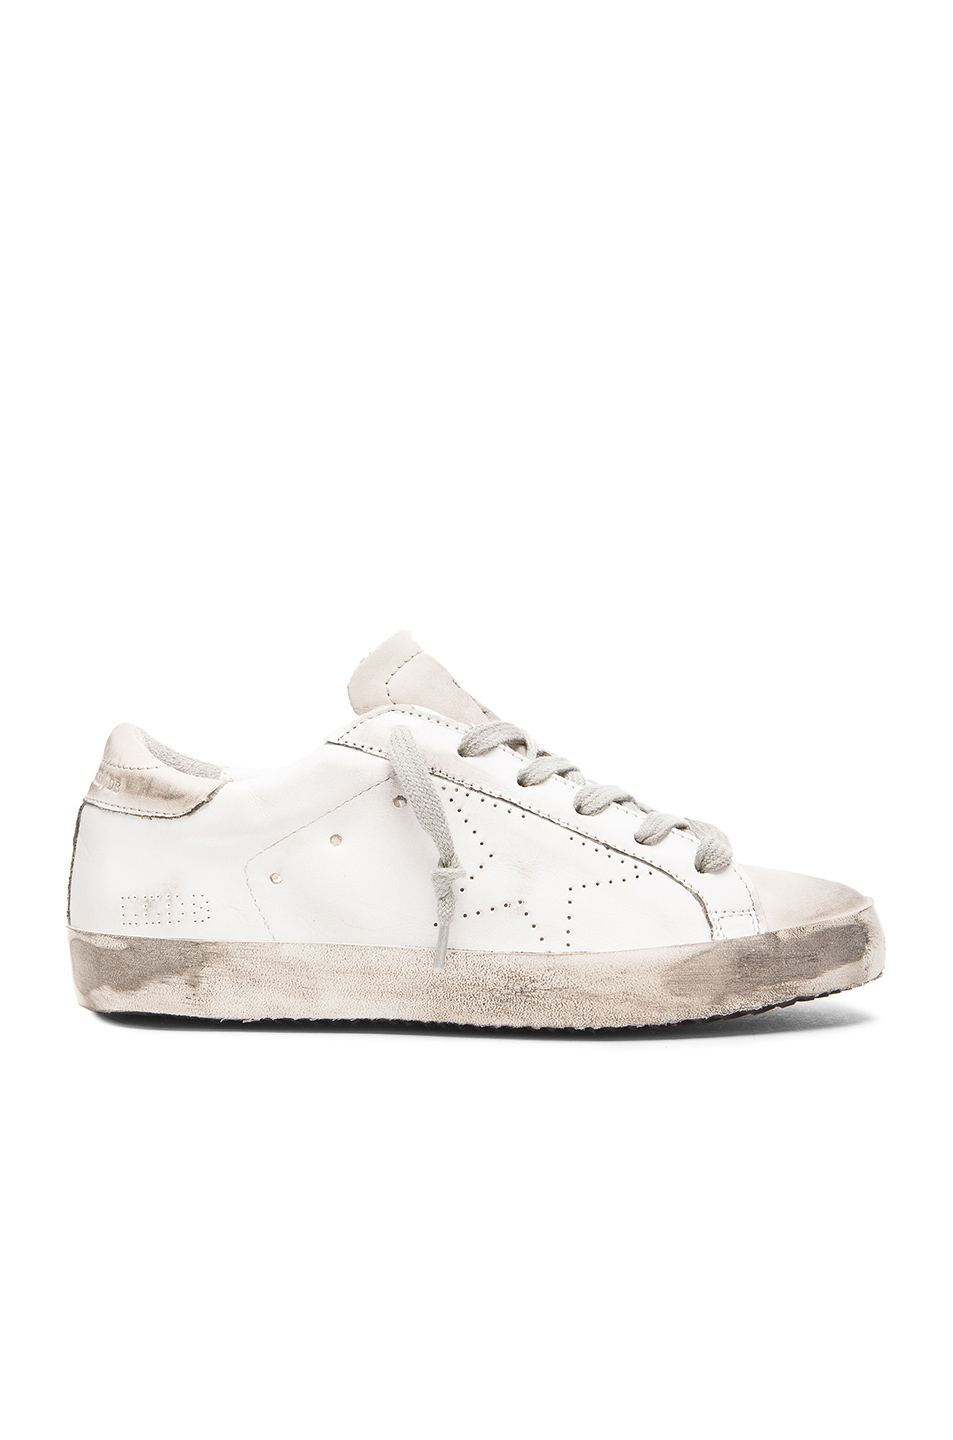 Superstar Distressed Leather Sneakers - White Golden Goose EobwZNy